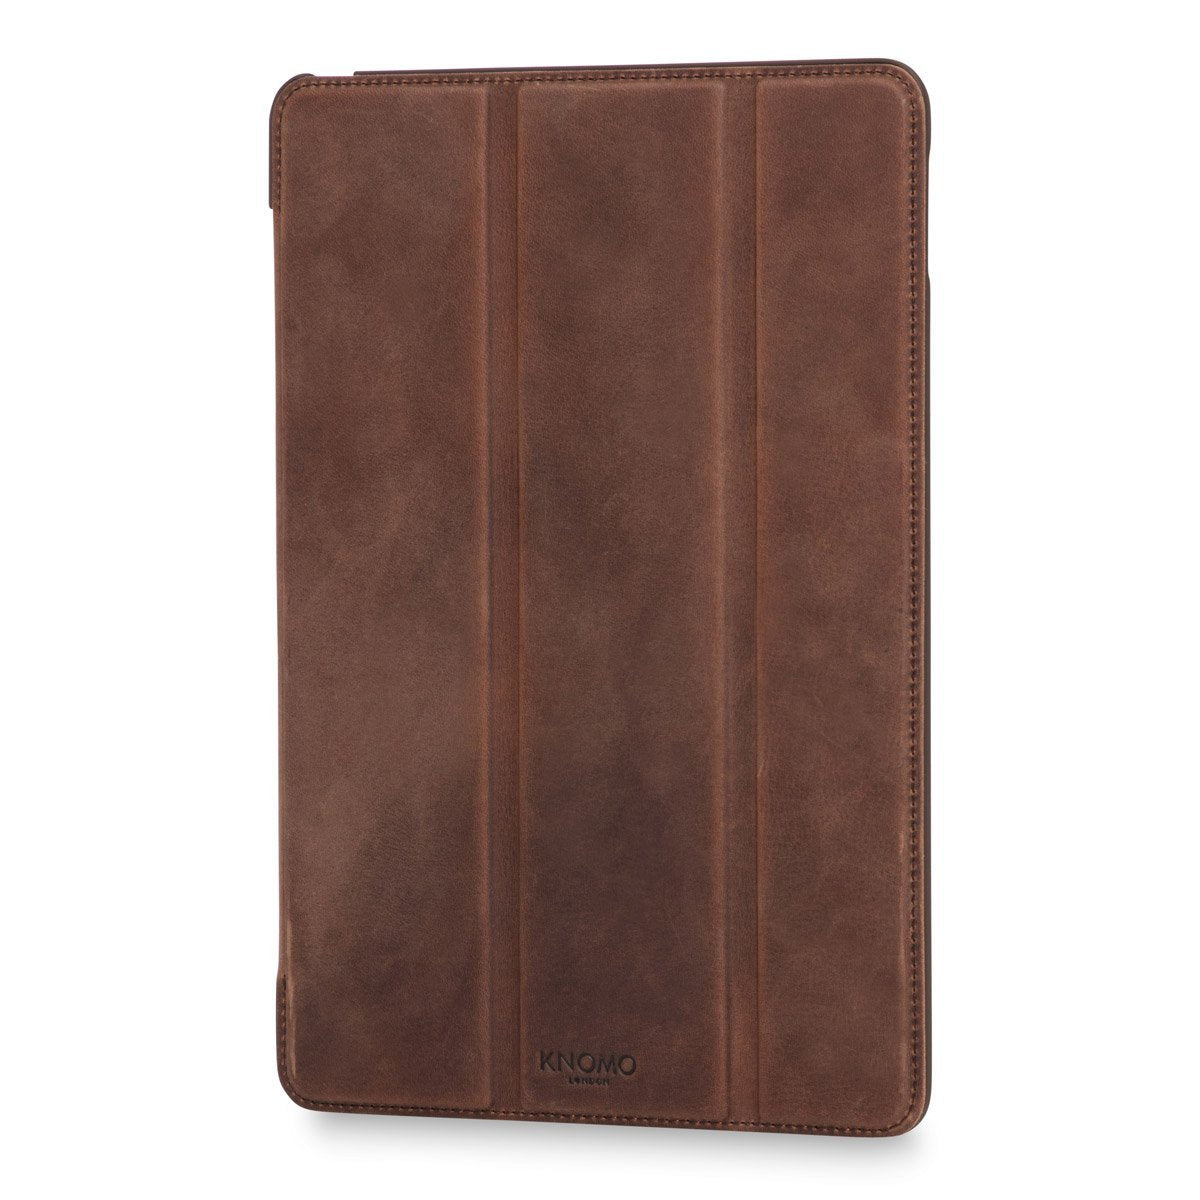 "Leather 9.7"" iPad Pro 2nd Gen Folio Case Tri-Fold - Brown – KNOMO"